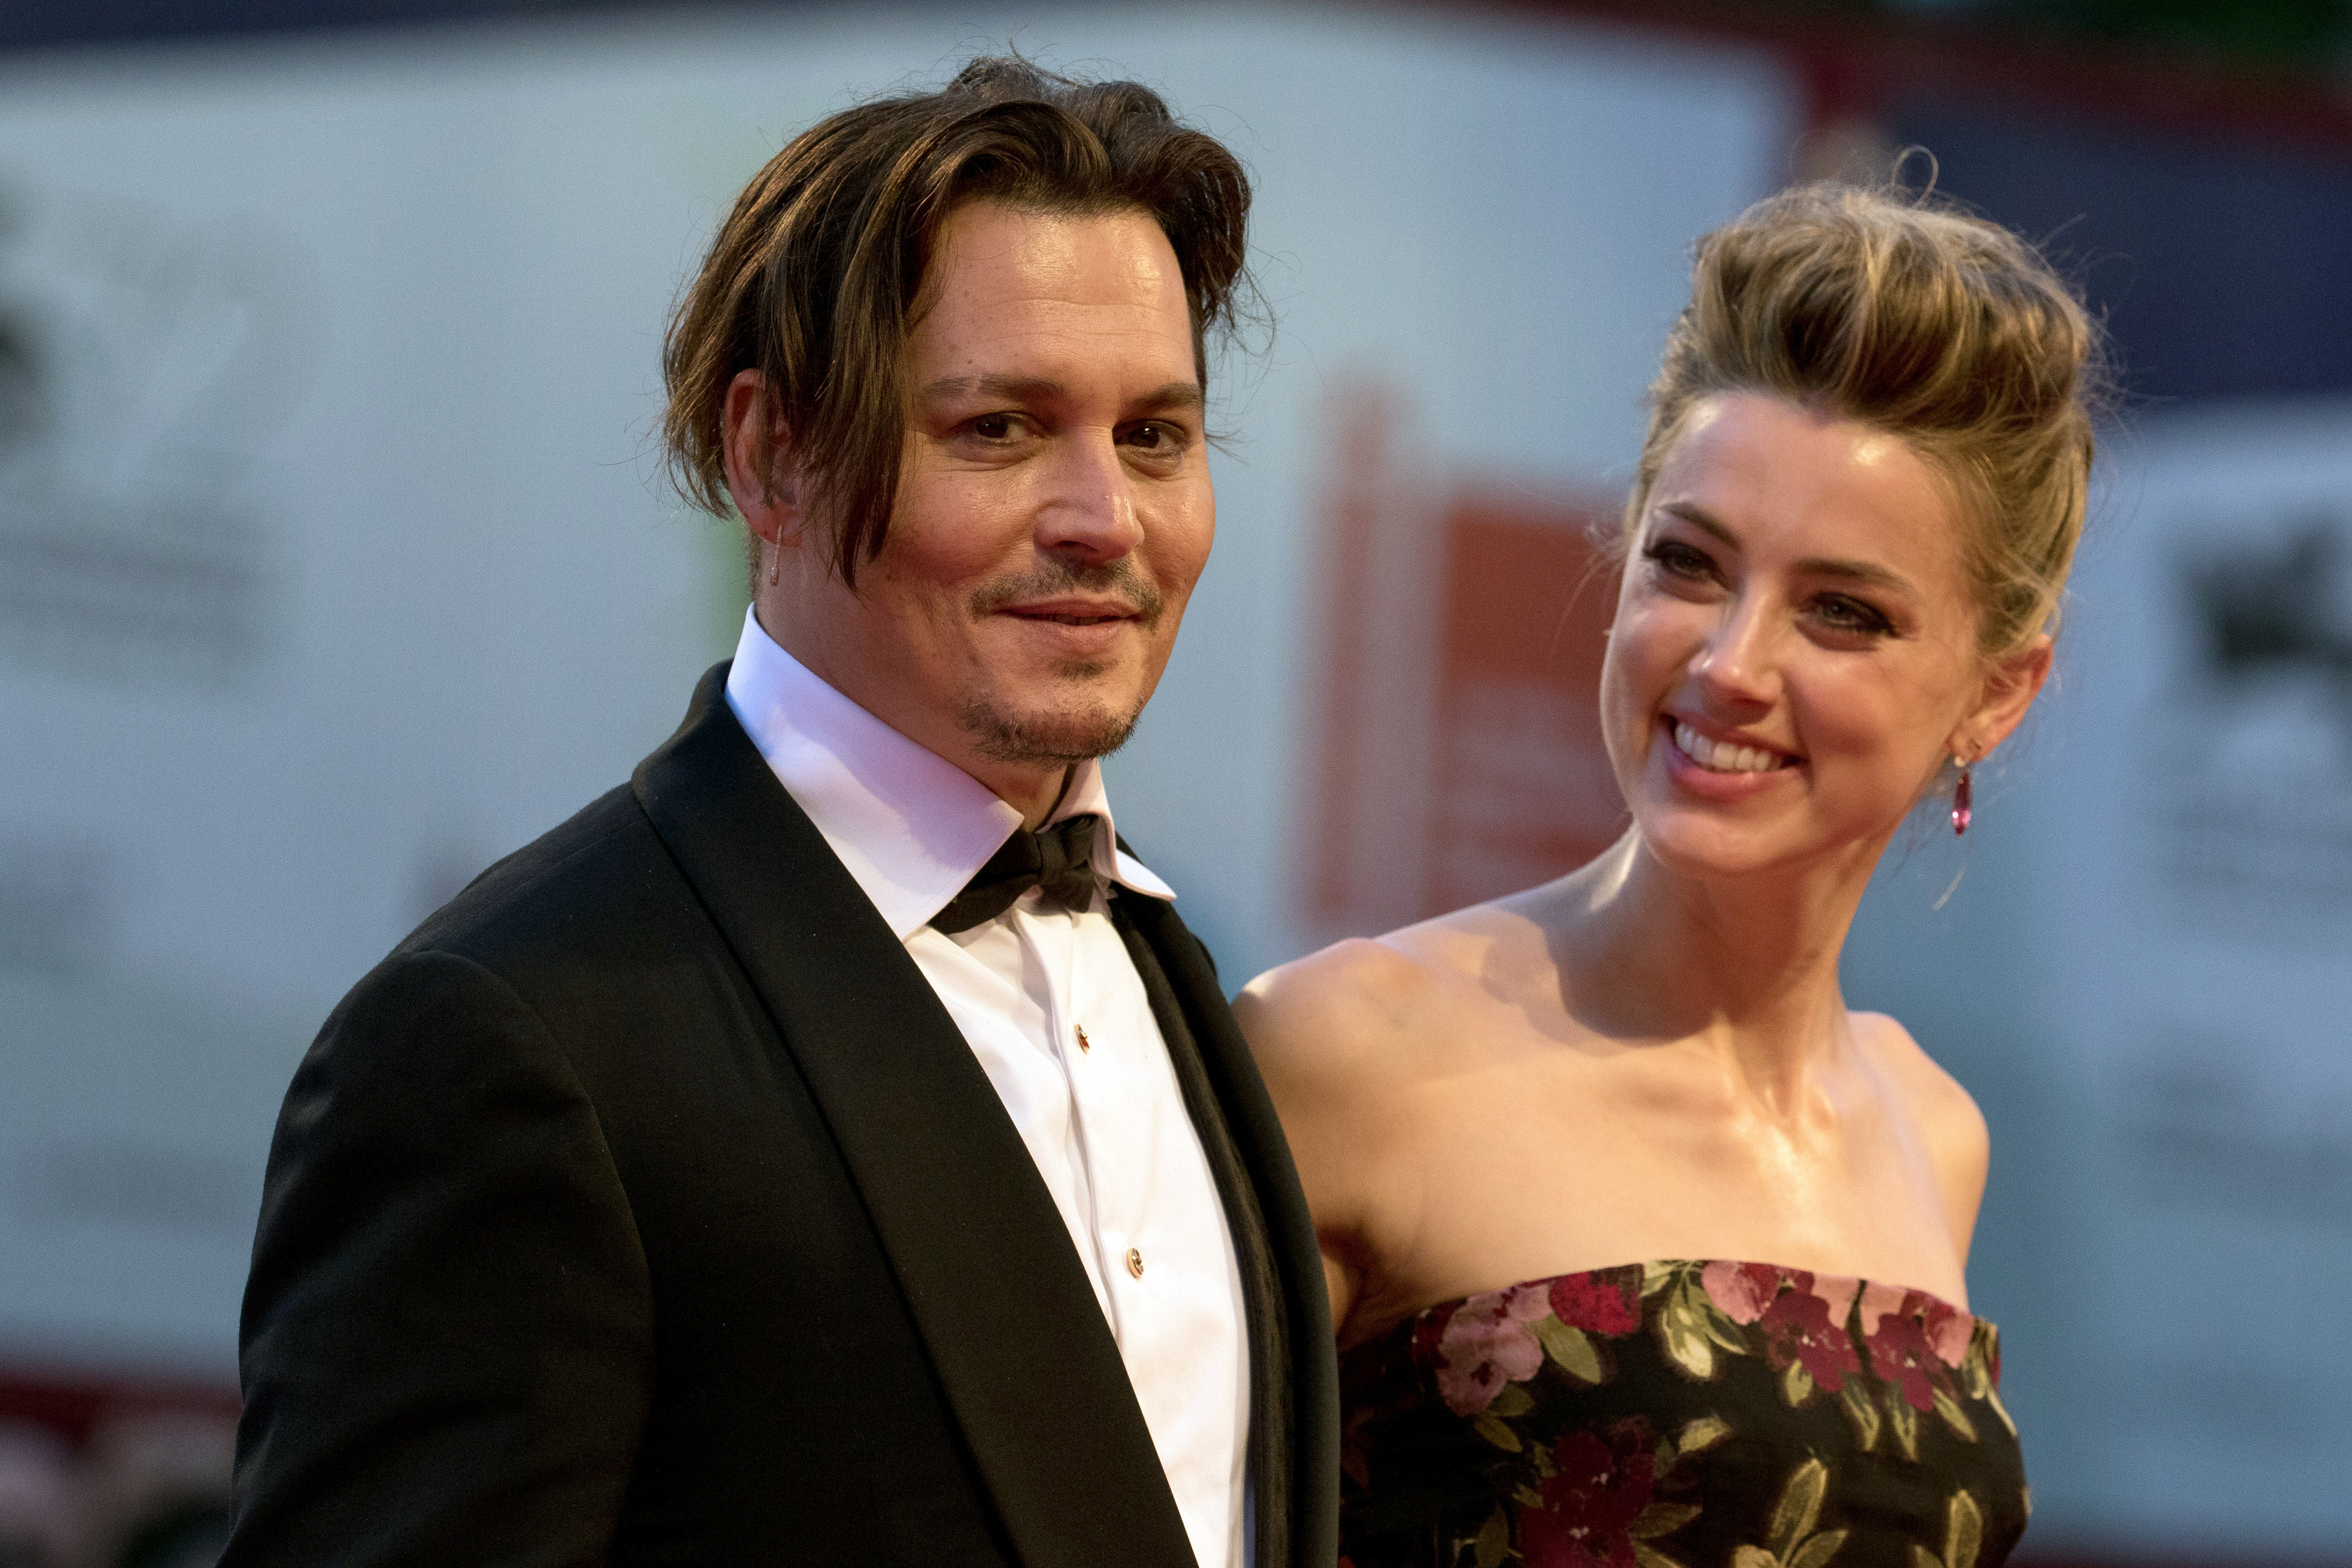 Actors Johnny Depp and Amber Heard attend the premiere of The Danish Girl during the 72nd Venice Film Festival at Palazzo del Cinema in Venice on Sept. 5, 2015